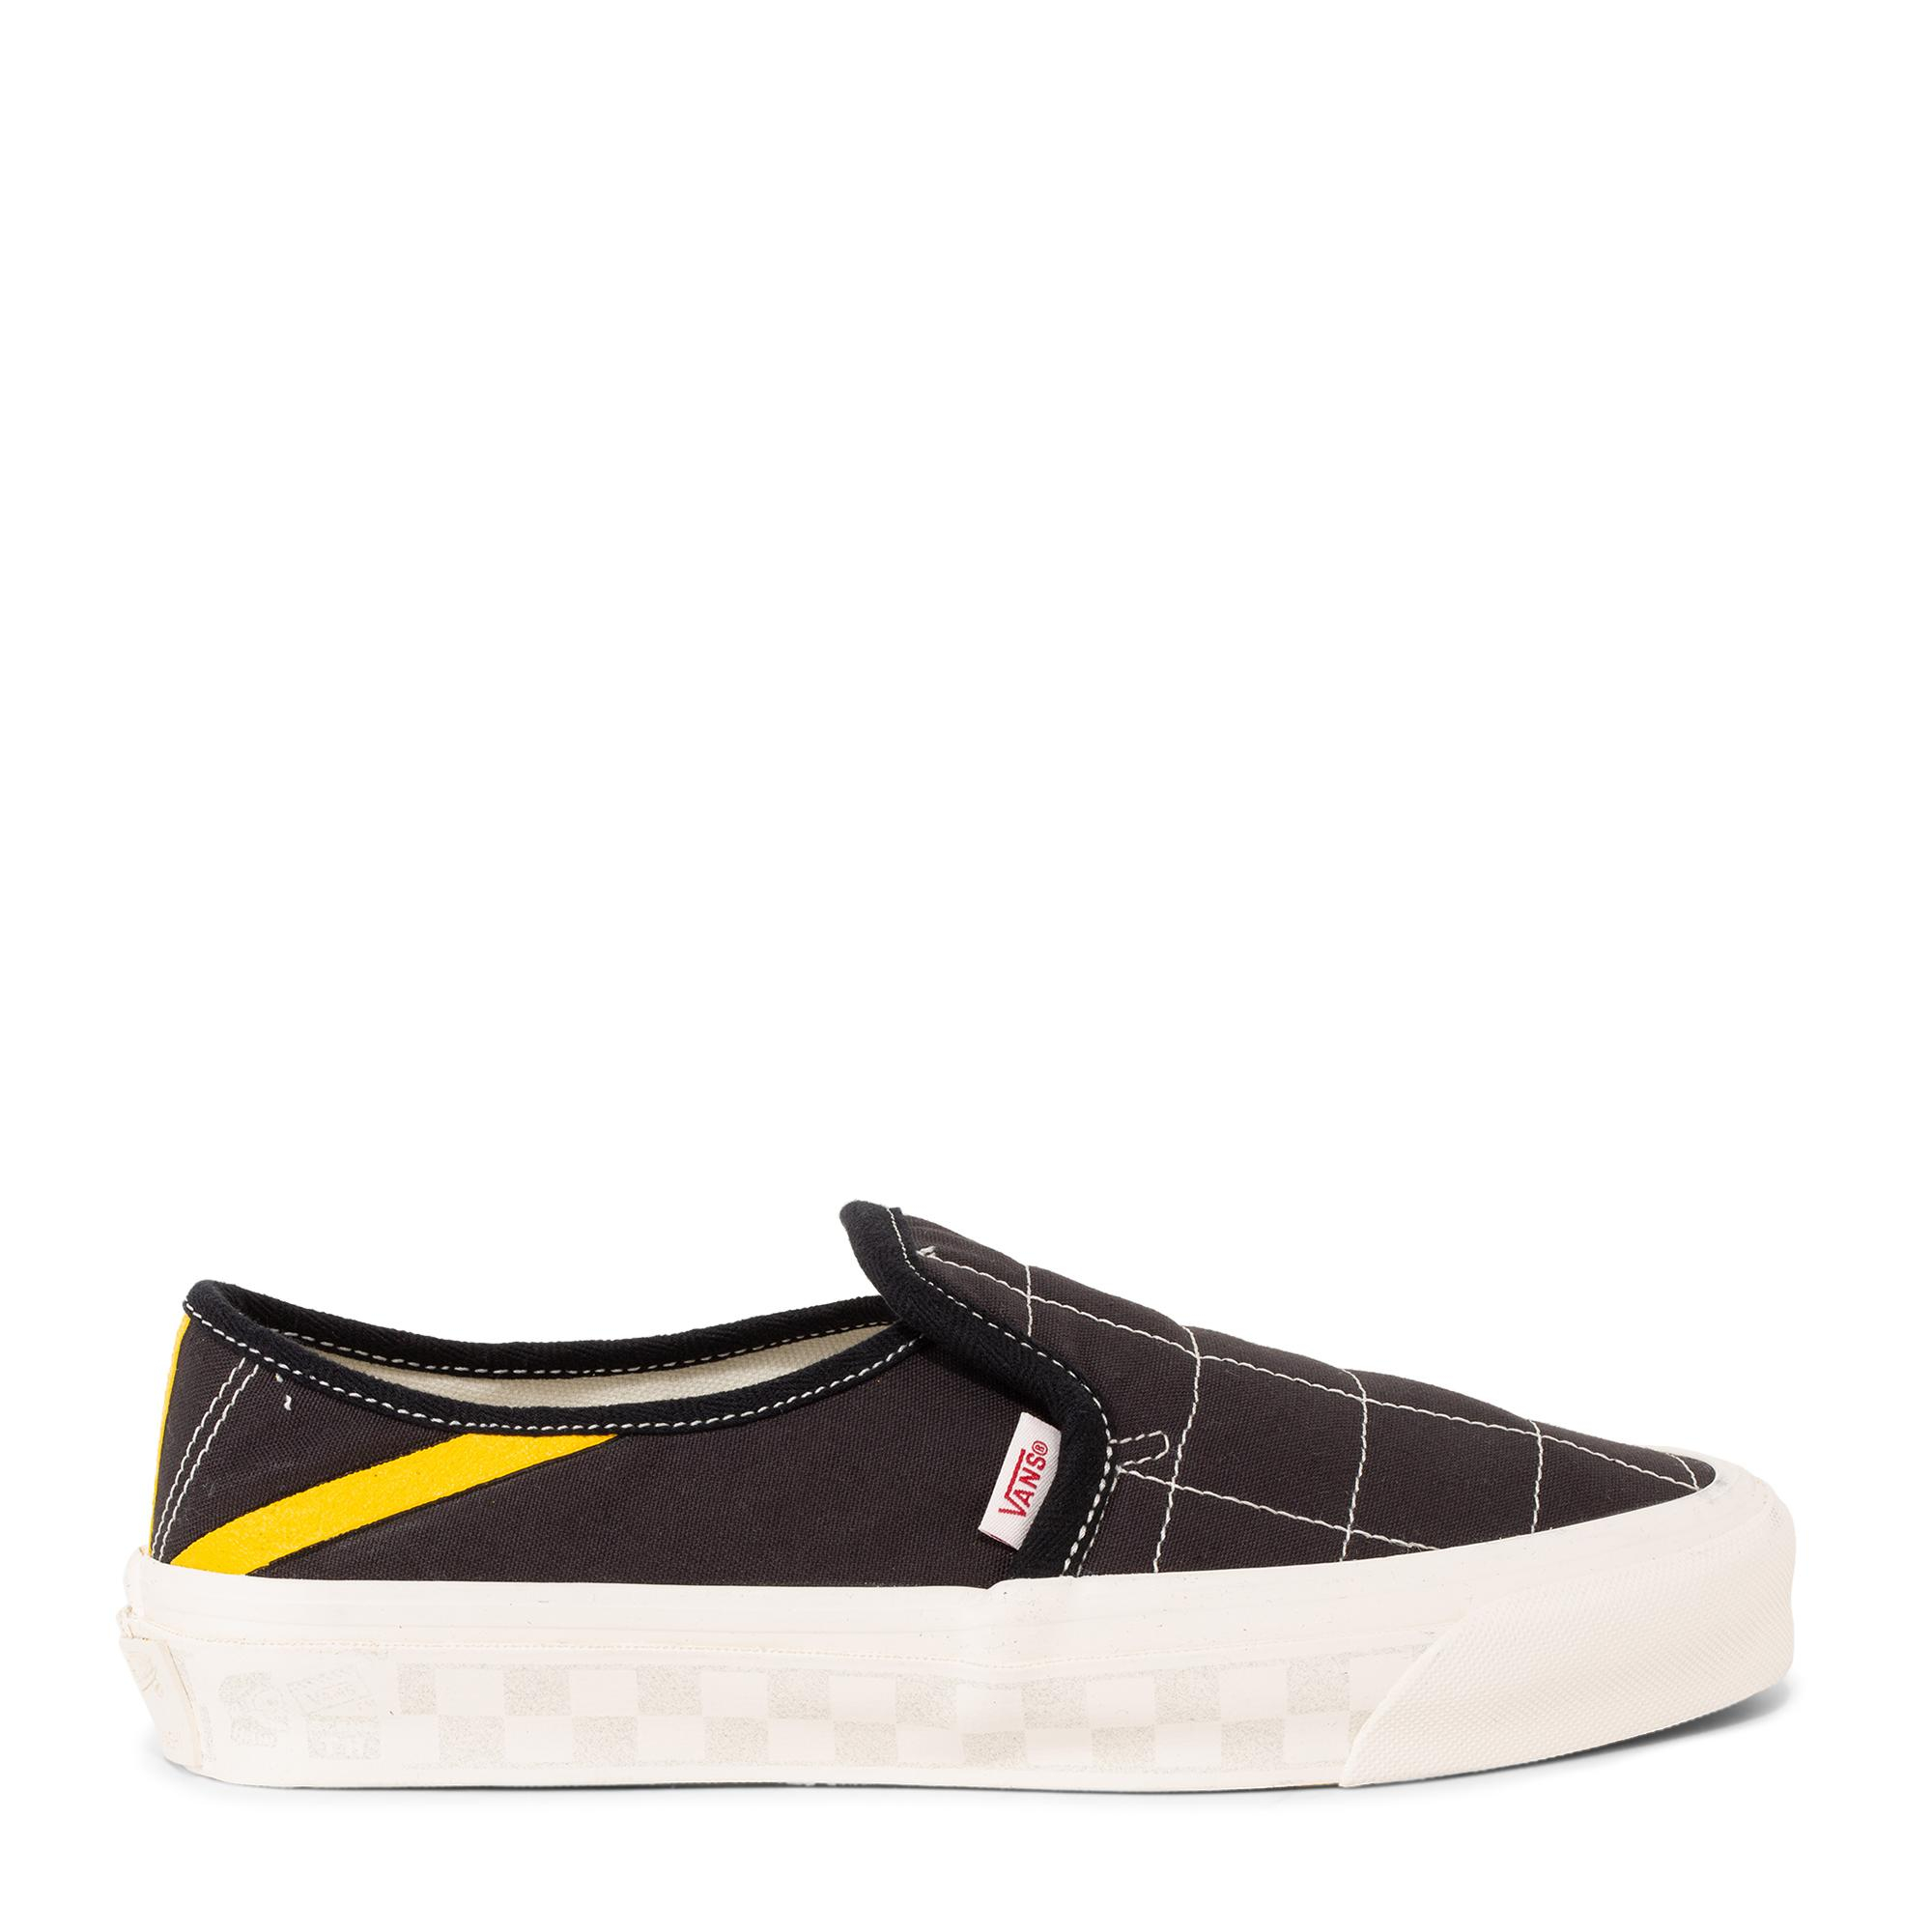 TH Style 47 LX slip-on sneakers